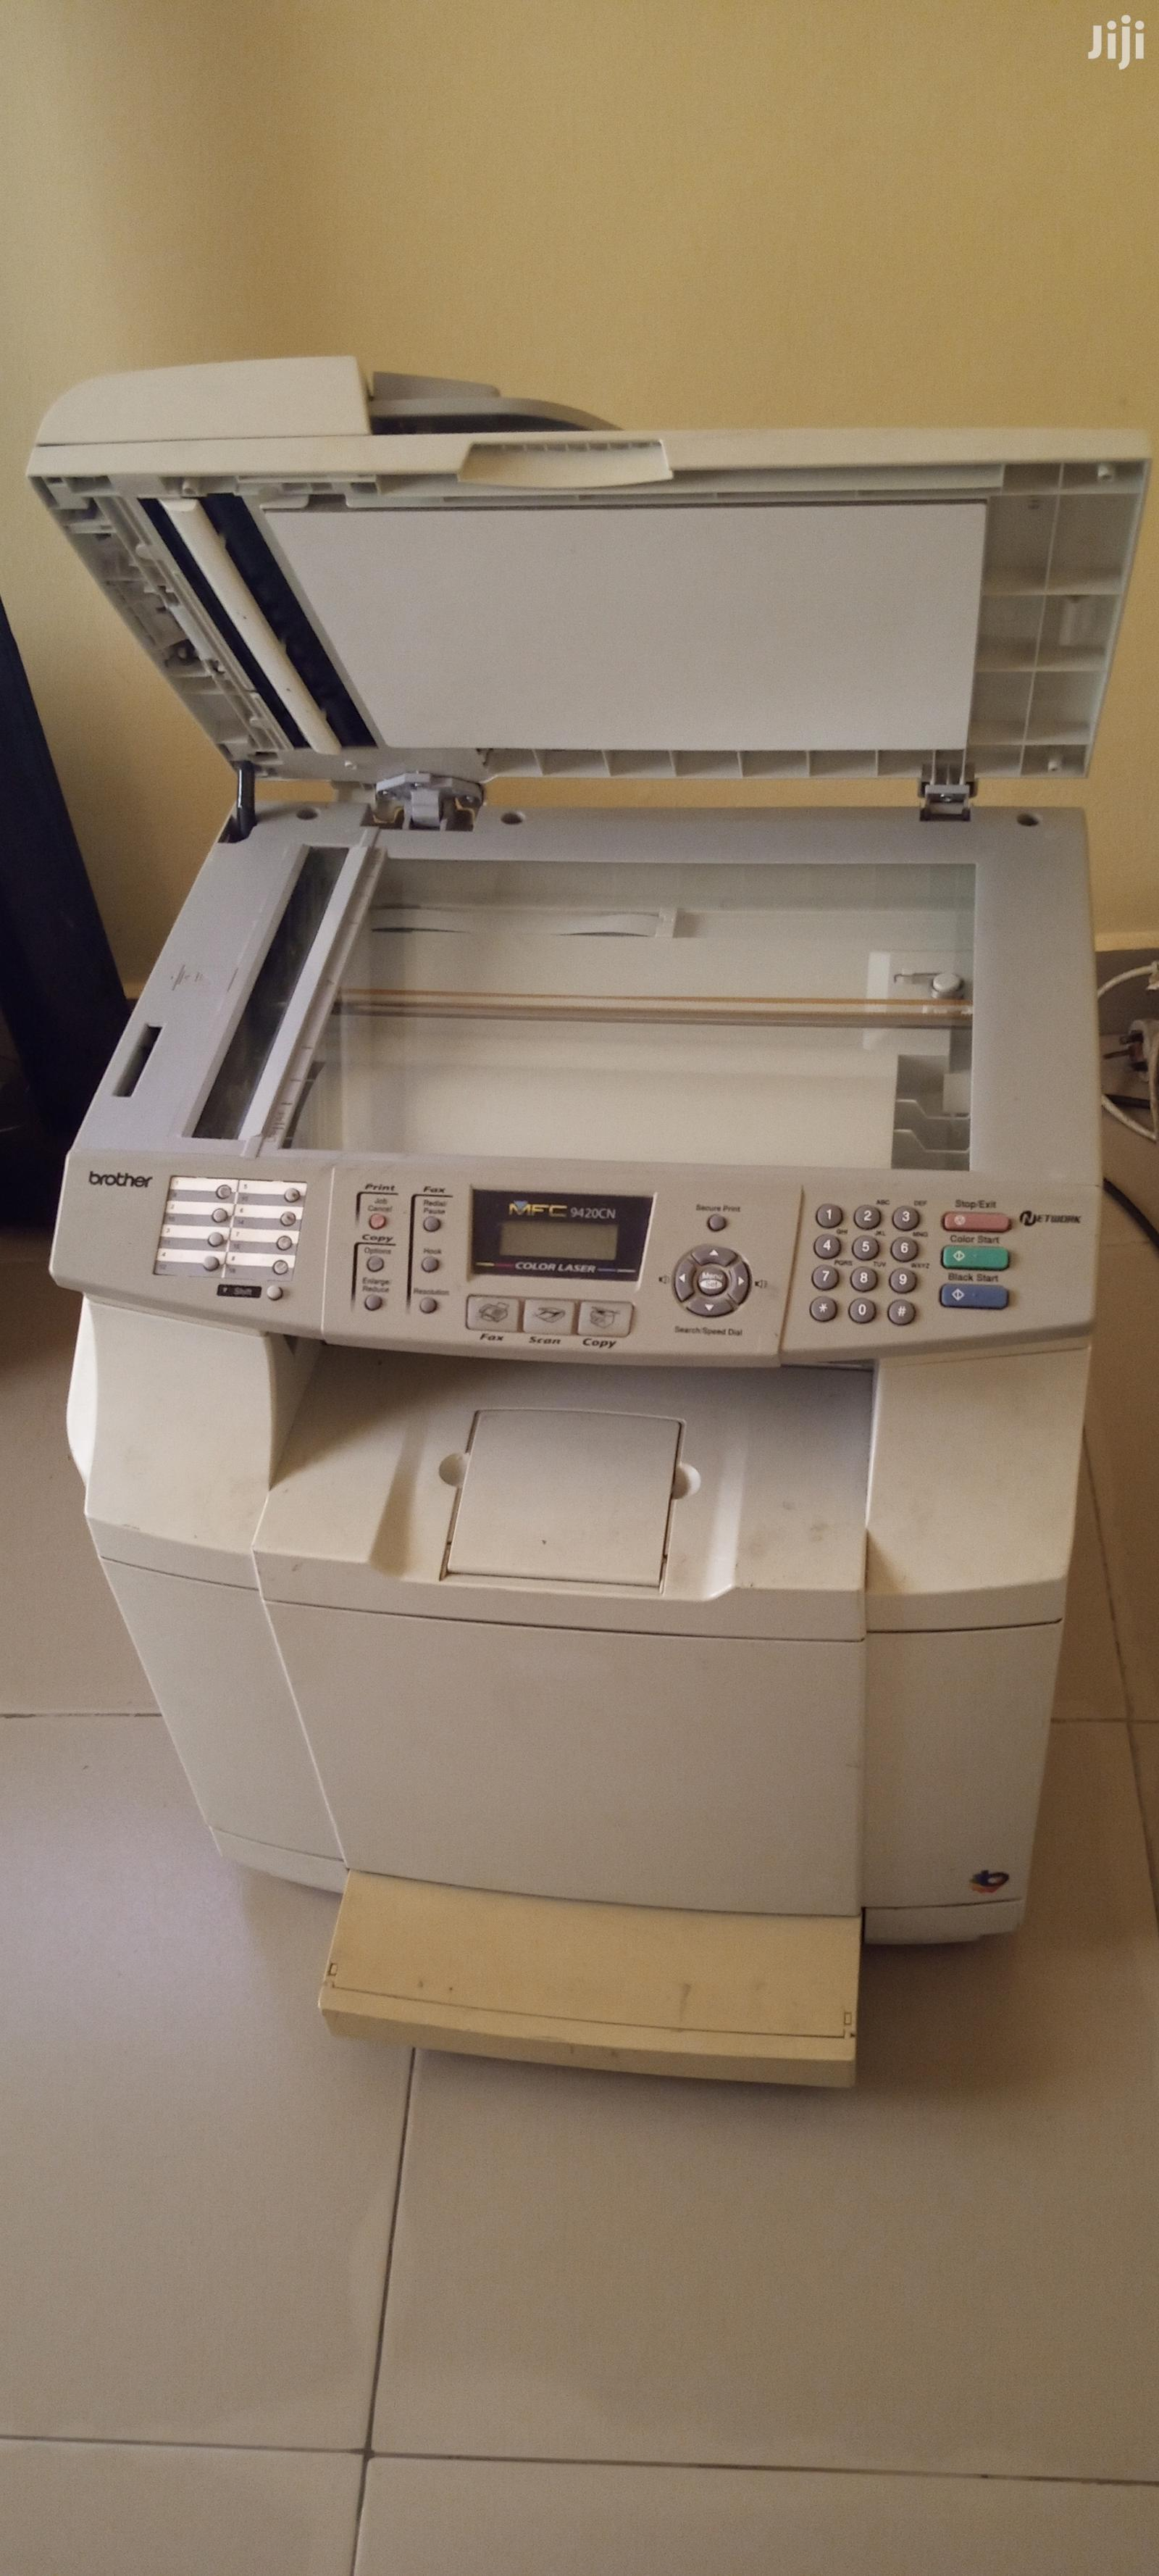 Printer Brother | Printers & Scanners for sale in Adenta Municipal, Greater Accra, Ghana